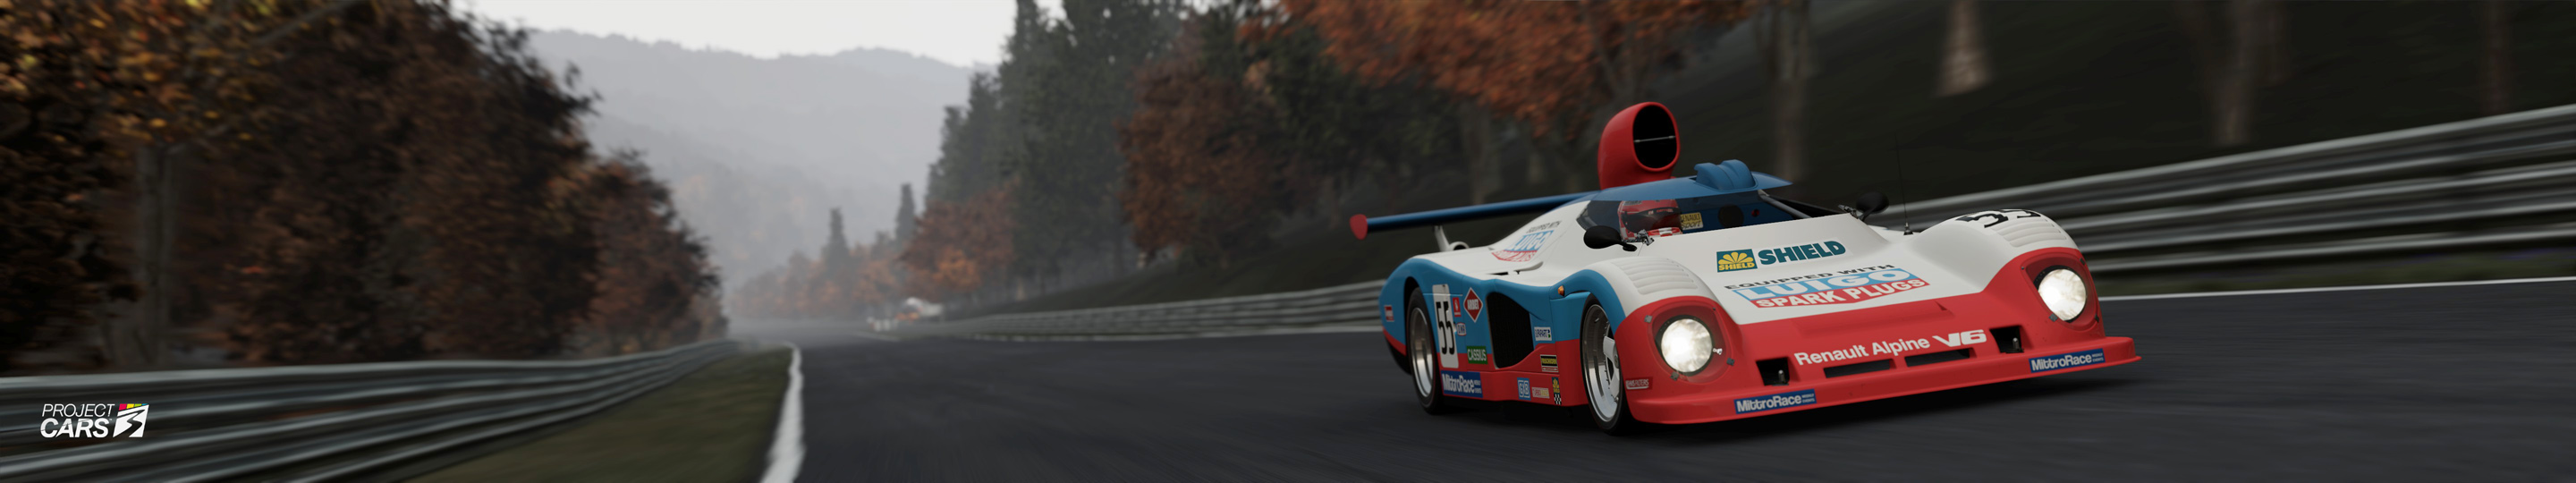 3 PROJECT CARS 3 ALPINE A442B at NORDSCHLEIFE copy.jpg